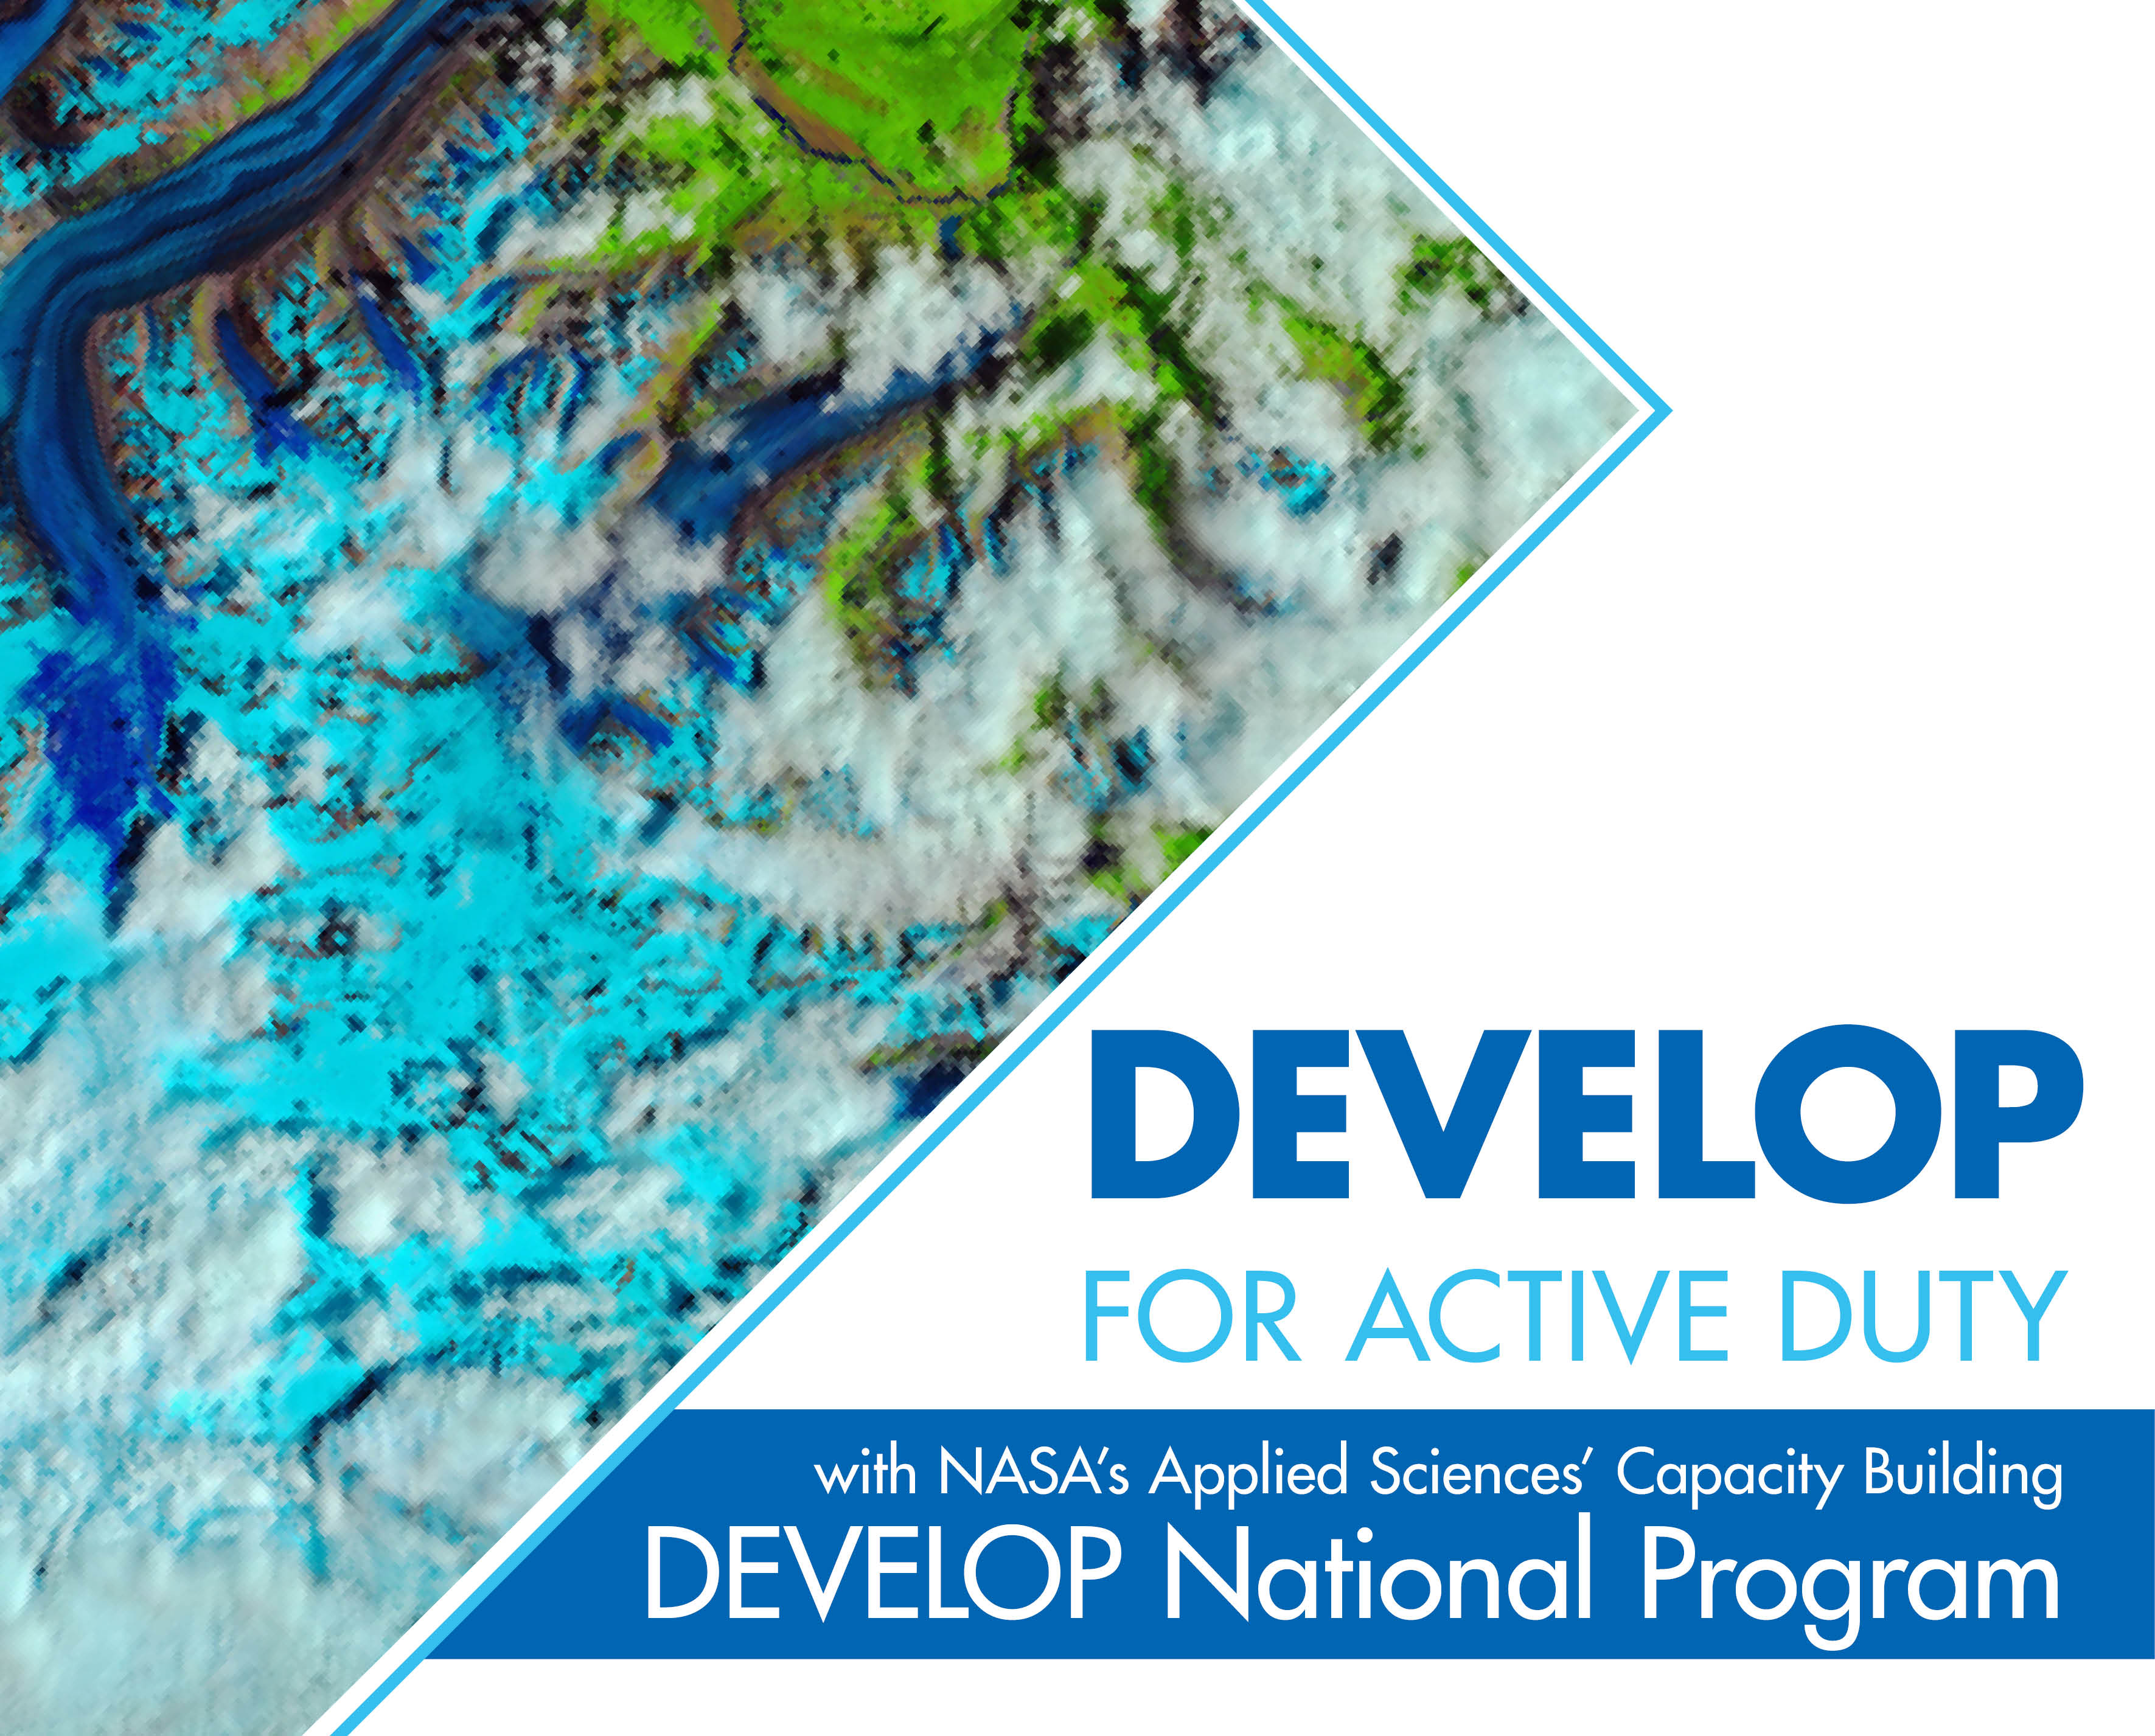 2019 DEVELOP Active Duty Flyer